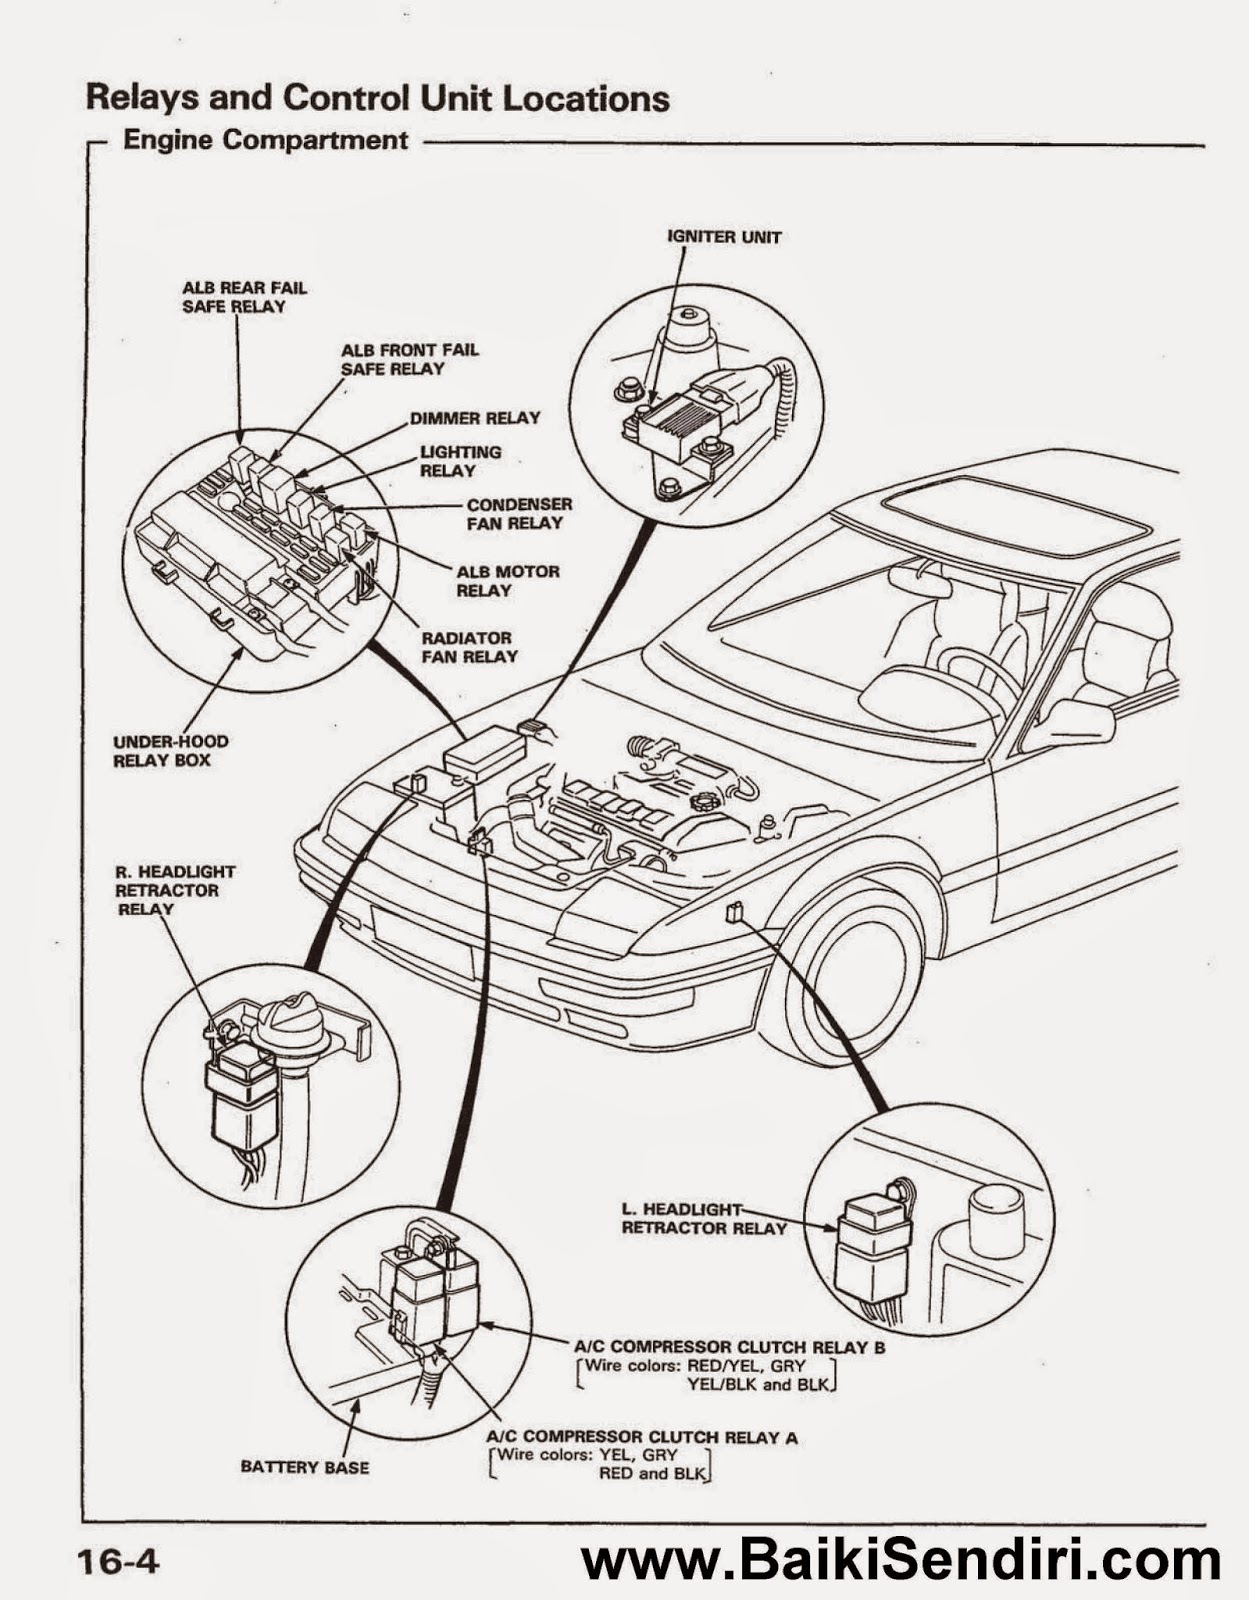 Fuse Box Fail 13 Wiring Diagram Images Diagrams Replace In Honda B20a Prelude Ba5 Replacement Diy 20 Fix On Your Own